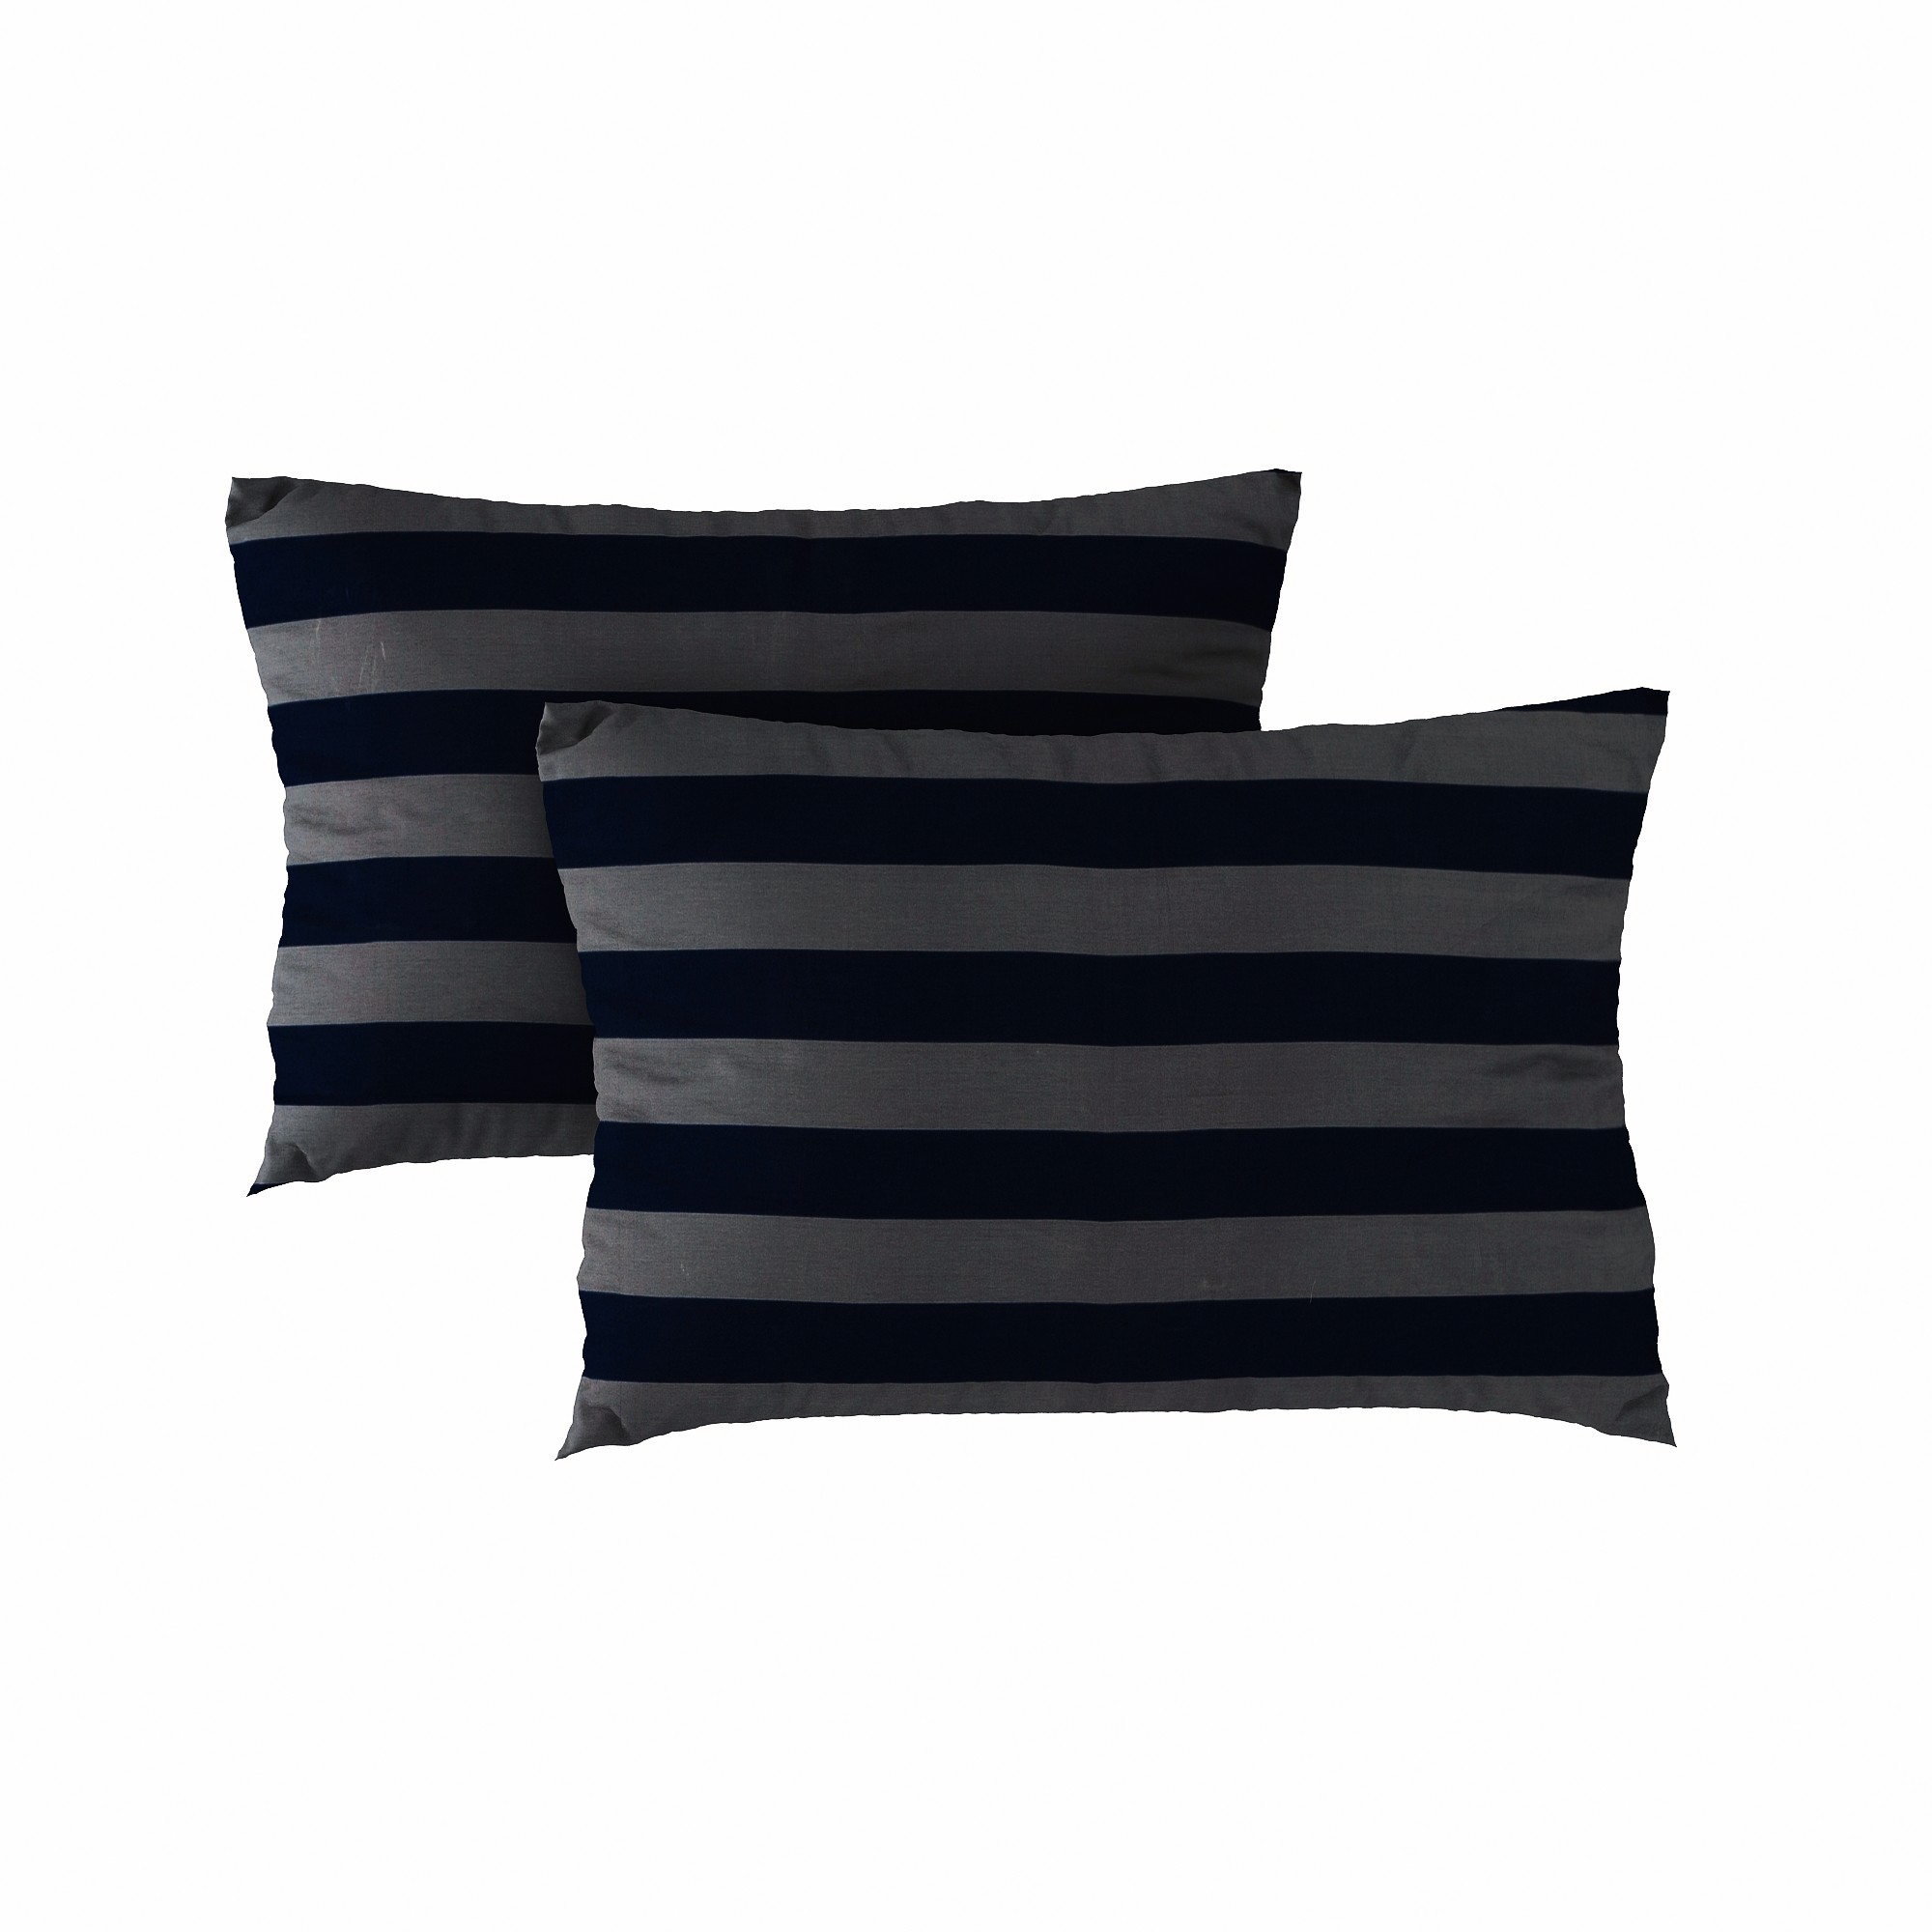 Pillow case 150 Grey navy striped